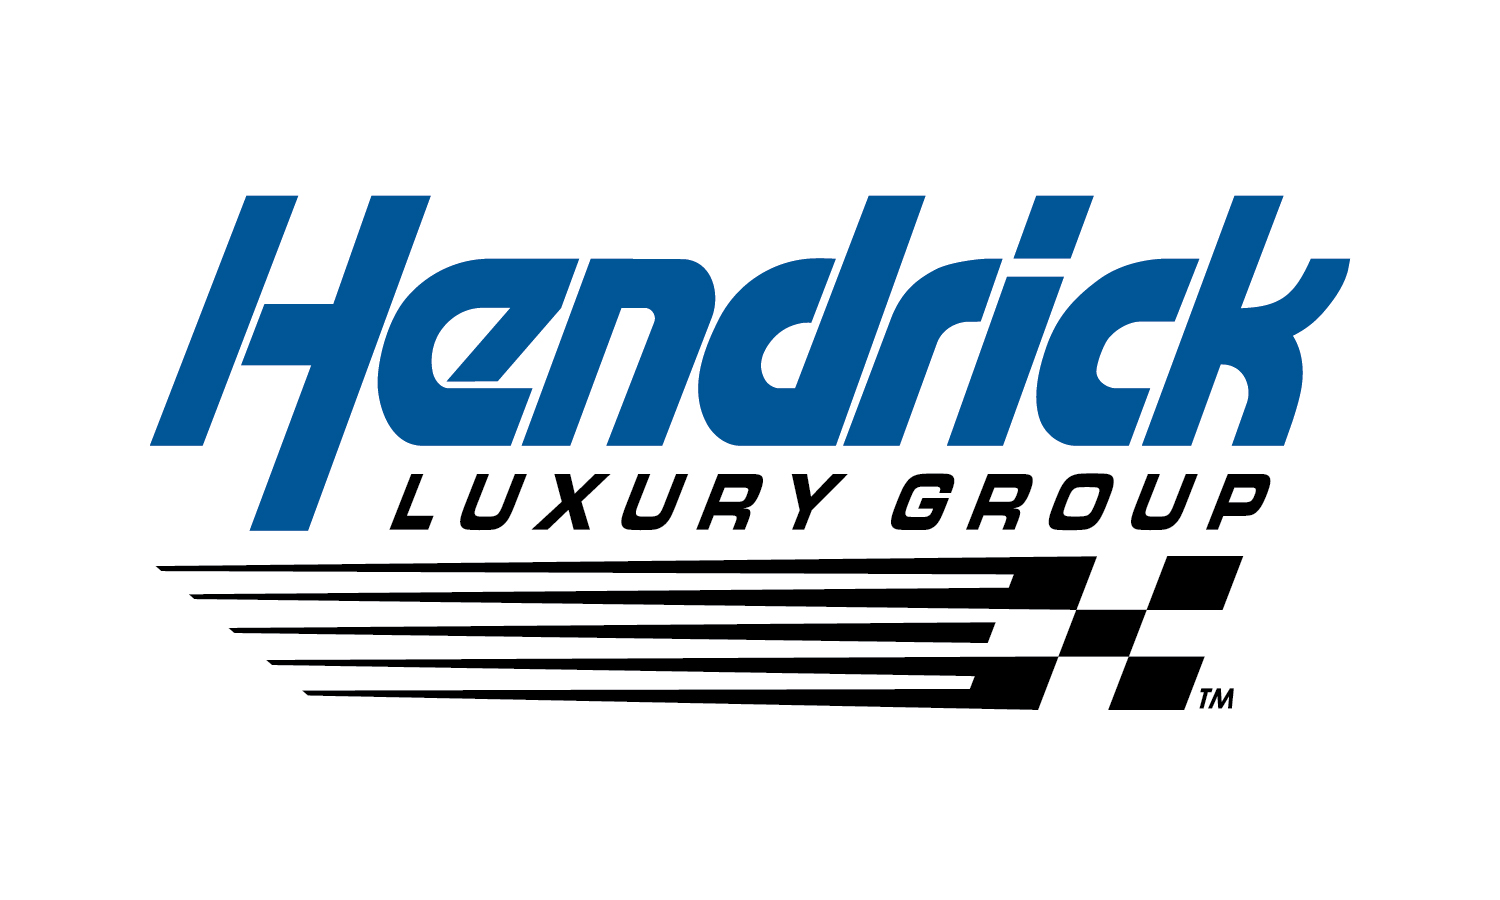 HENDRICK LUXURY GROUP